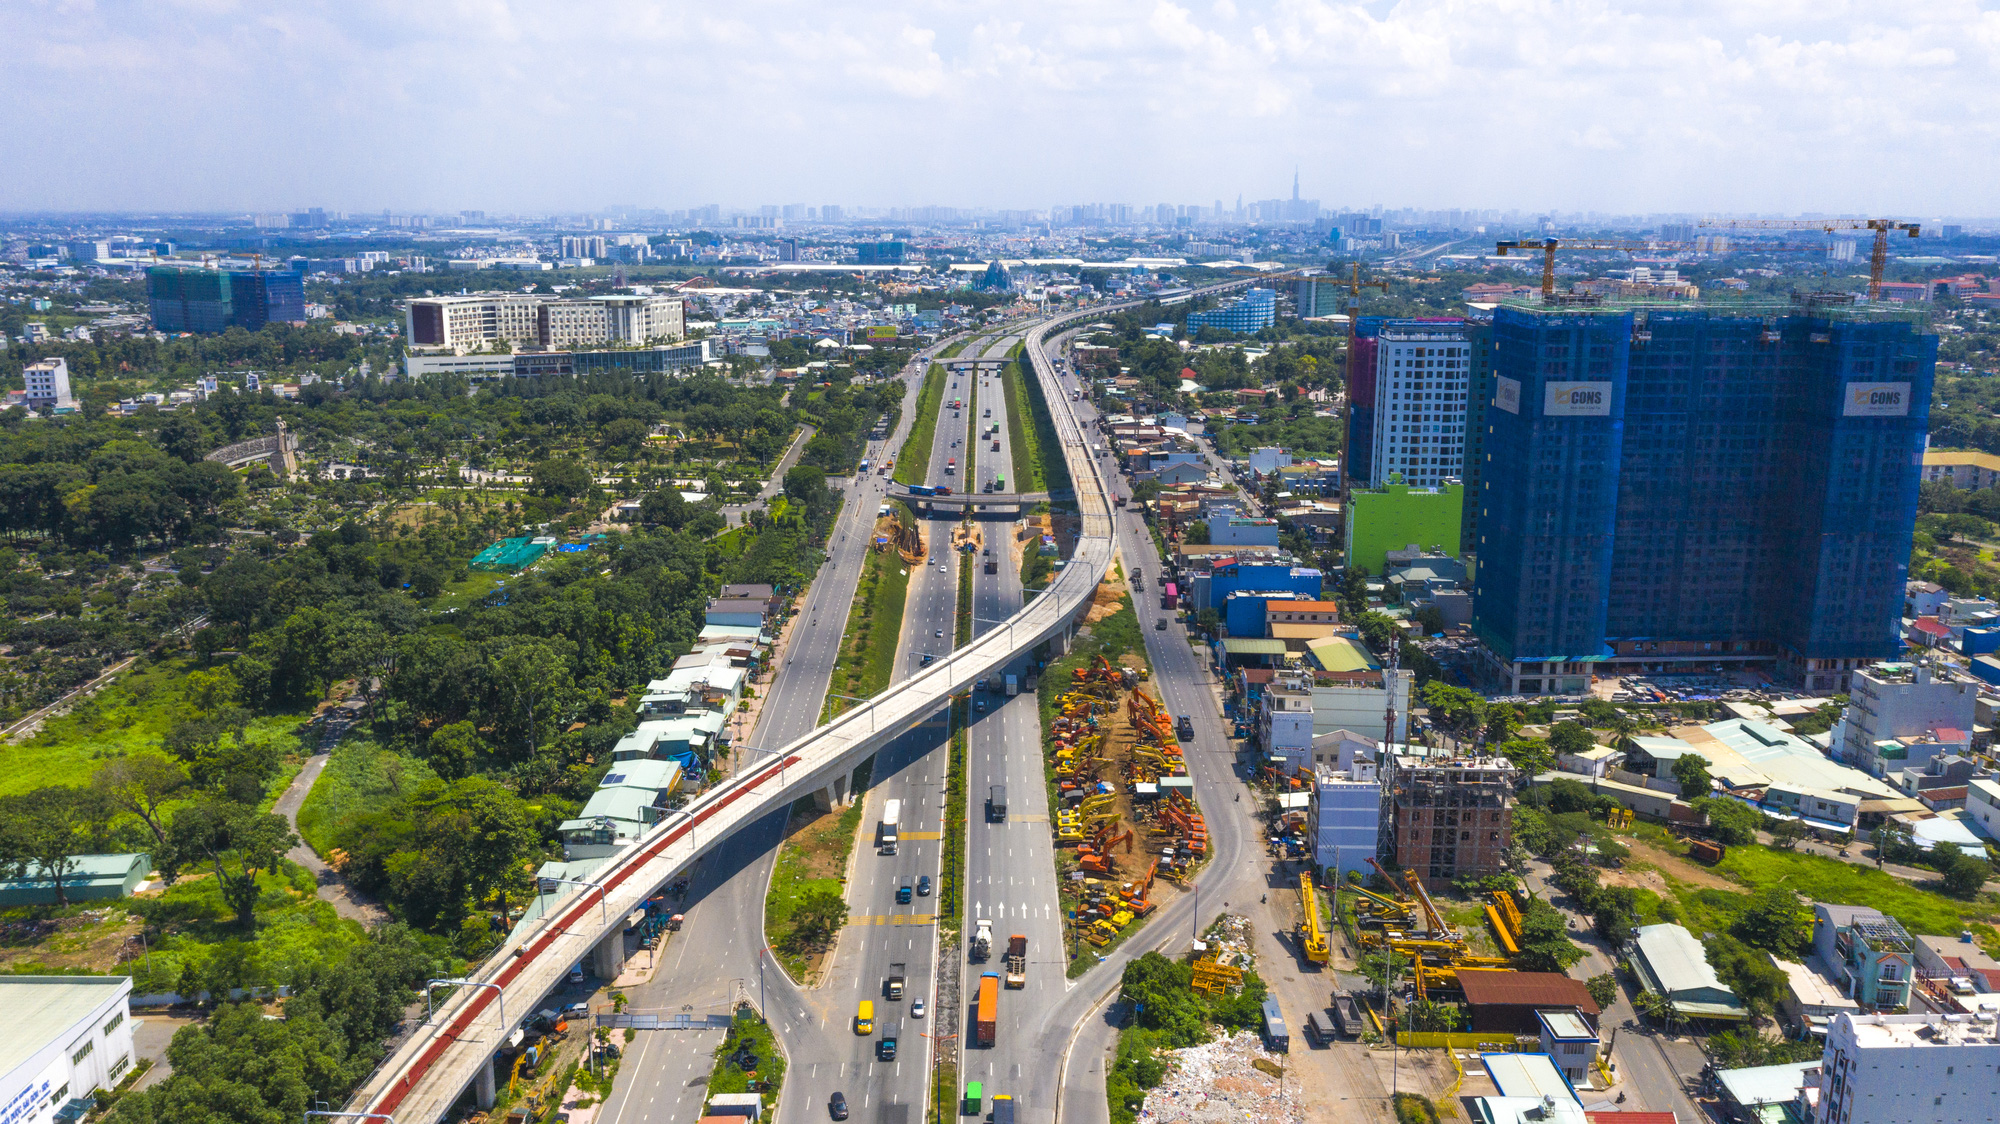 Public transport key to Thu Duc City development